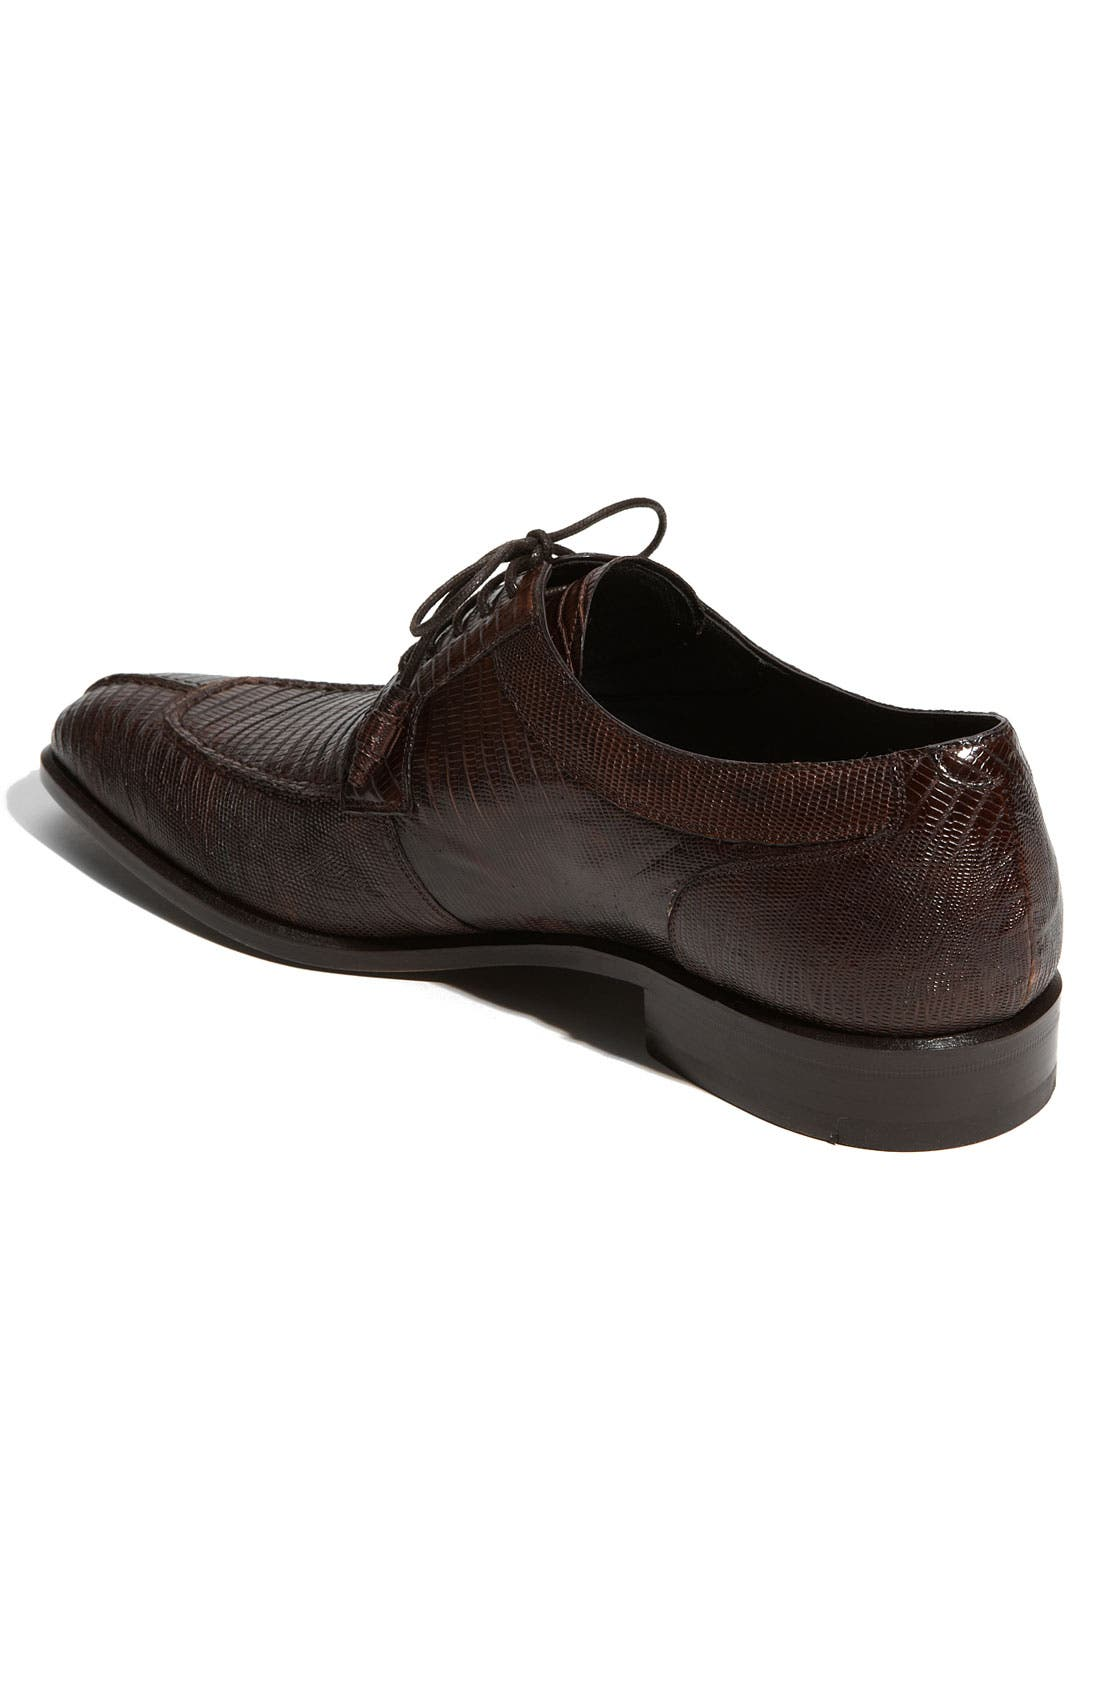 Alternate Image 3  - Mezlan 'Barolo' Apron Toe Oxford